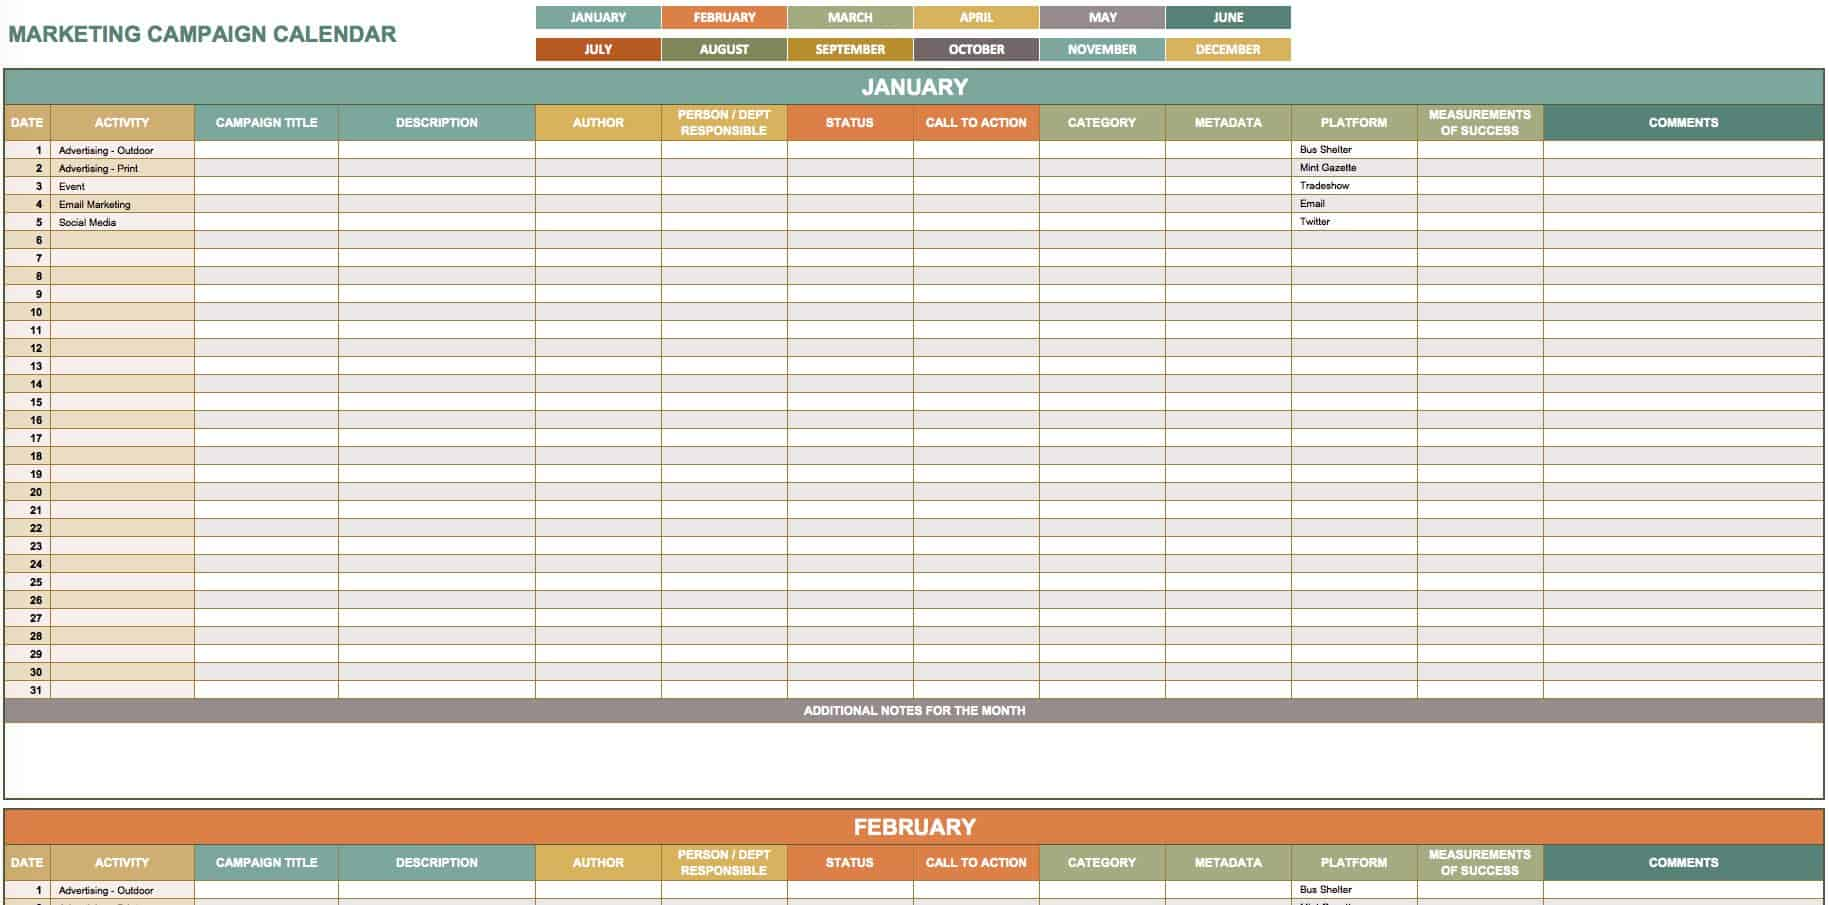 Free Marketing Calendar Templates For Excel Smartsheet - Marketing plan timeline template excel